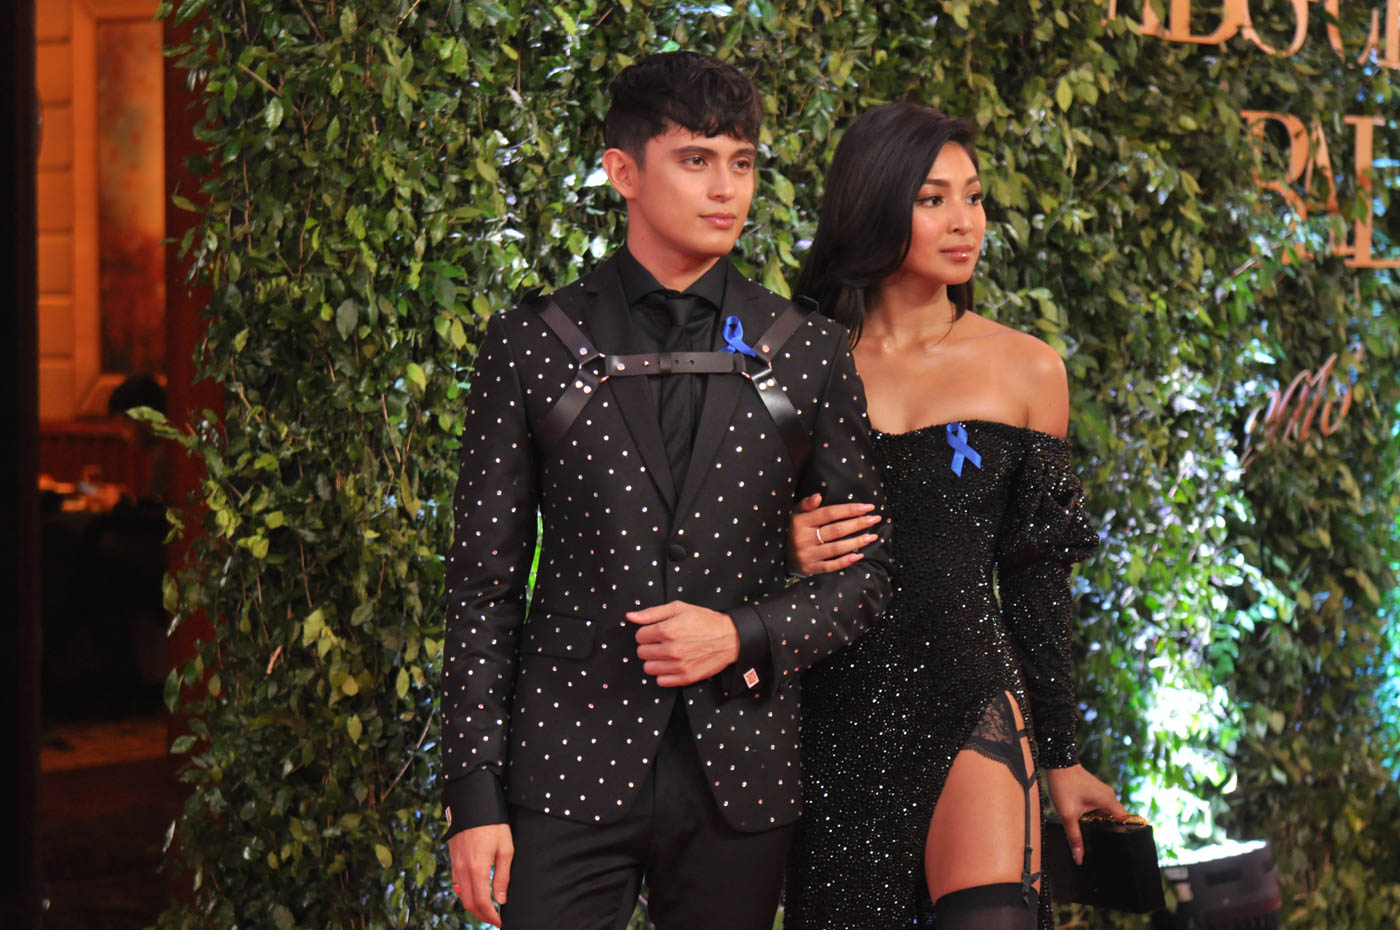 RED CARPET READY. James Reid and Nadine Lustre attend the ABS-CBN Ball for the first time in 2018. File photo by Jay Ganzon/Rappler